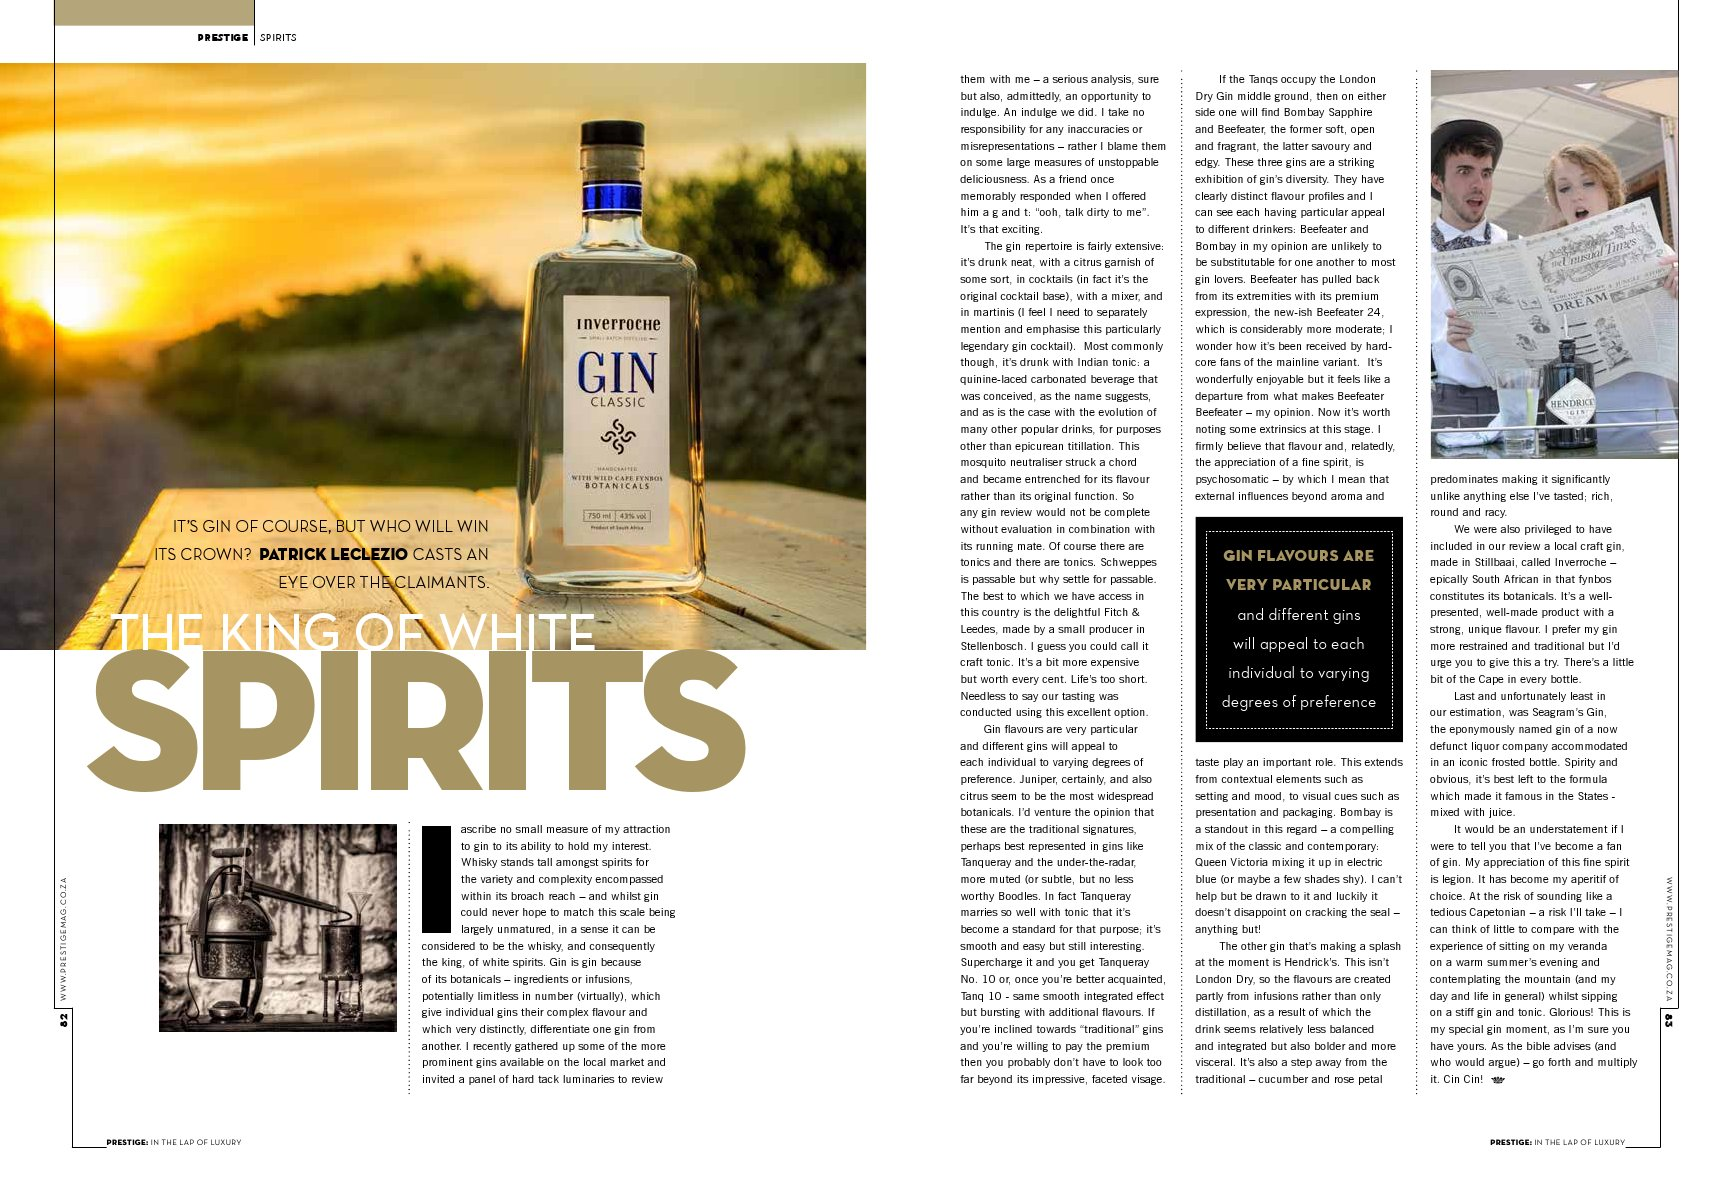 The king of white spirits   The Indy